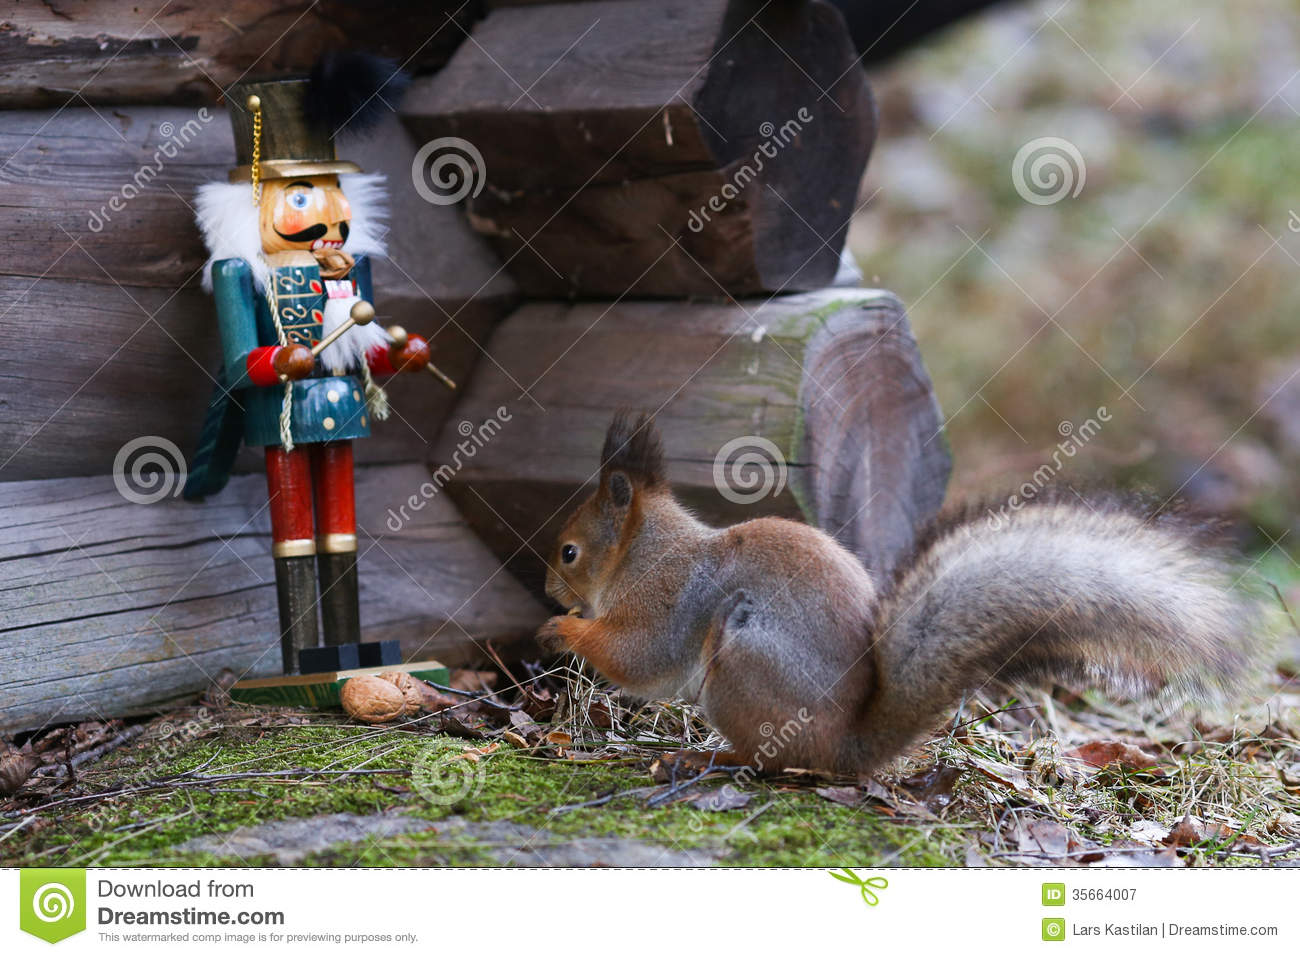 Nutcracker And Squirrel Royalty Free Stock Photography Image 35664007